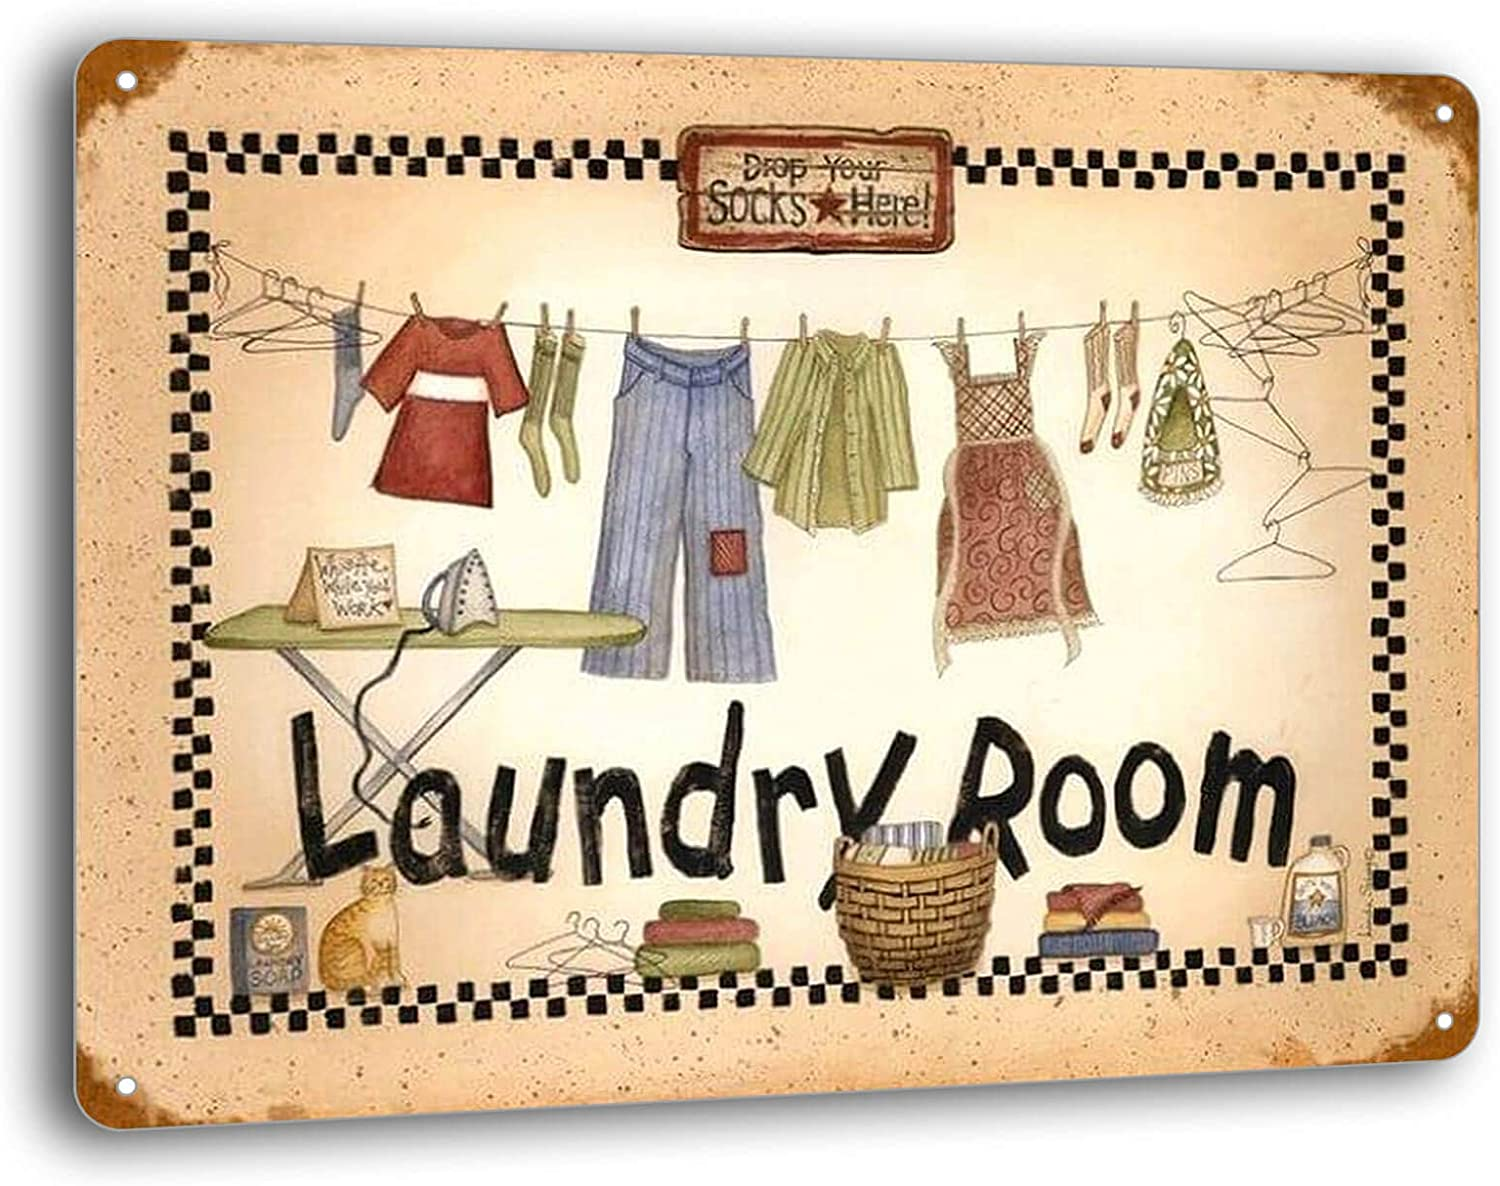 BAYABU Metal Signs Retro Laundry Room Room Wall Plaques Plate Tin Sign Home Decor 16 x 12 inches